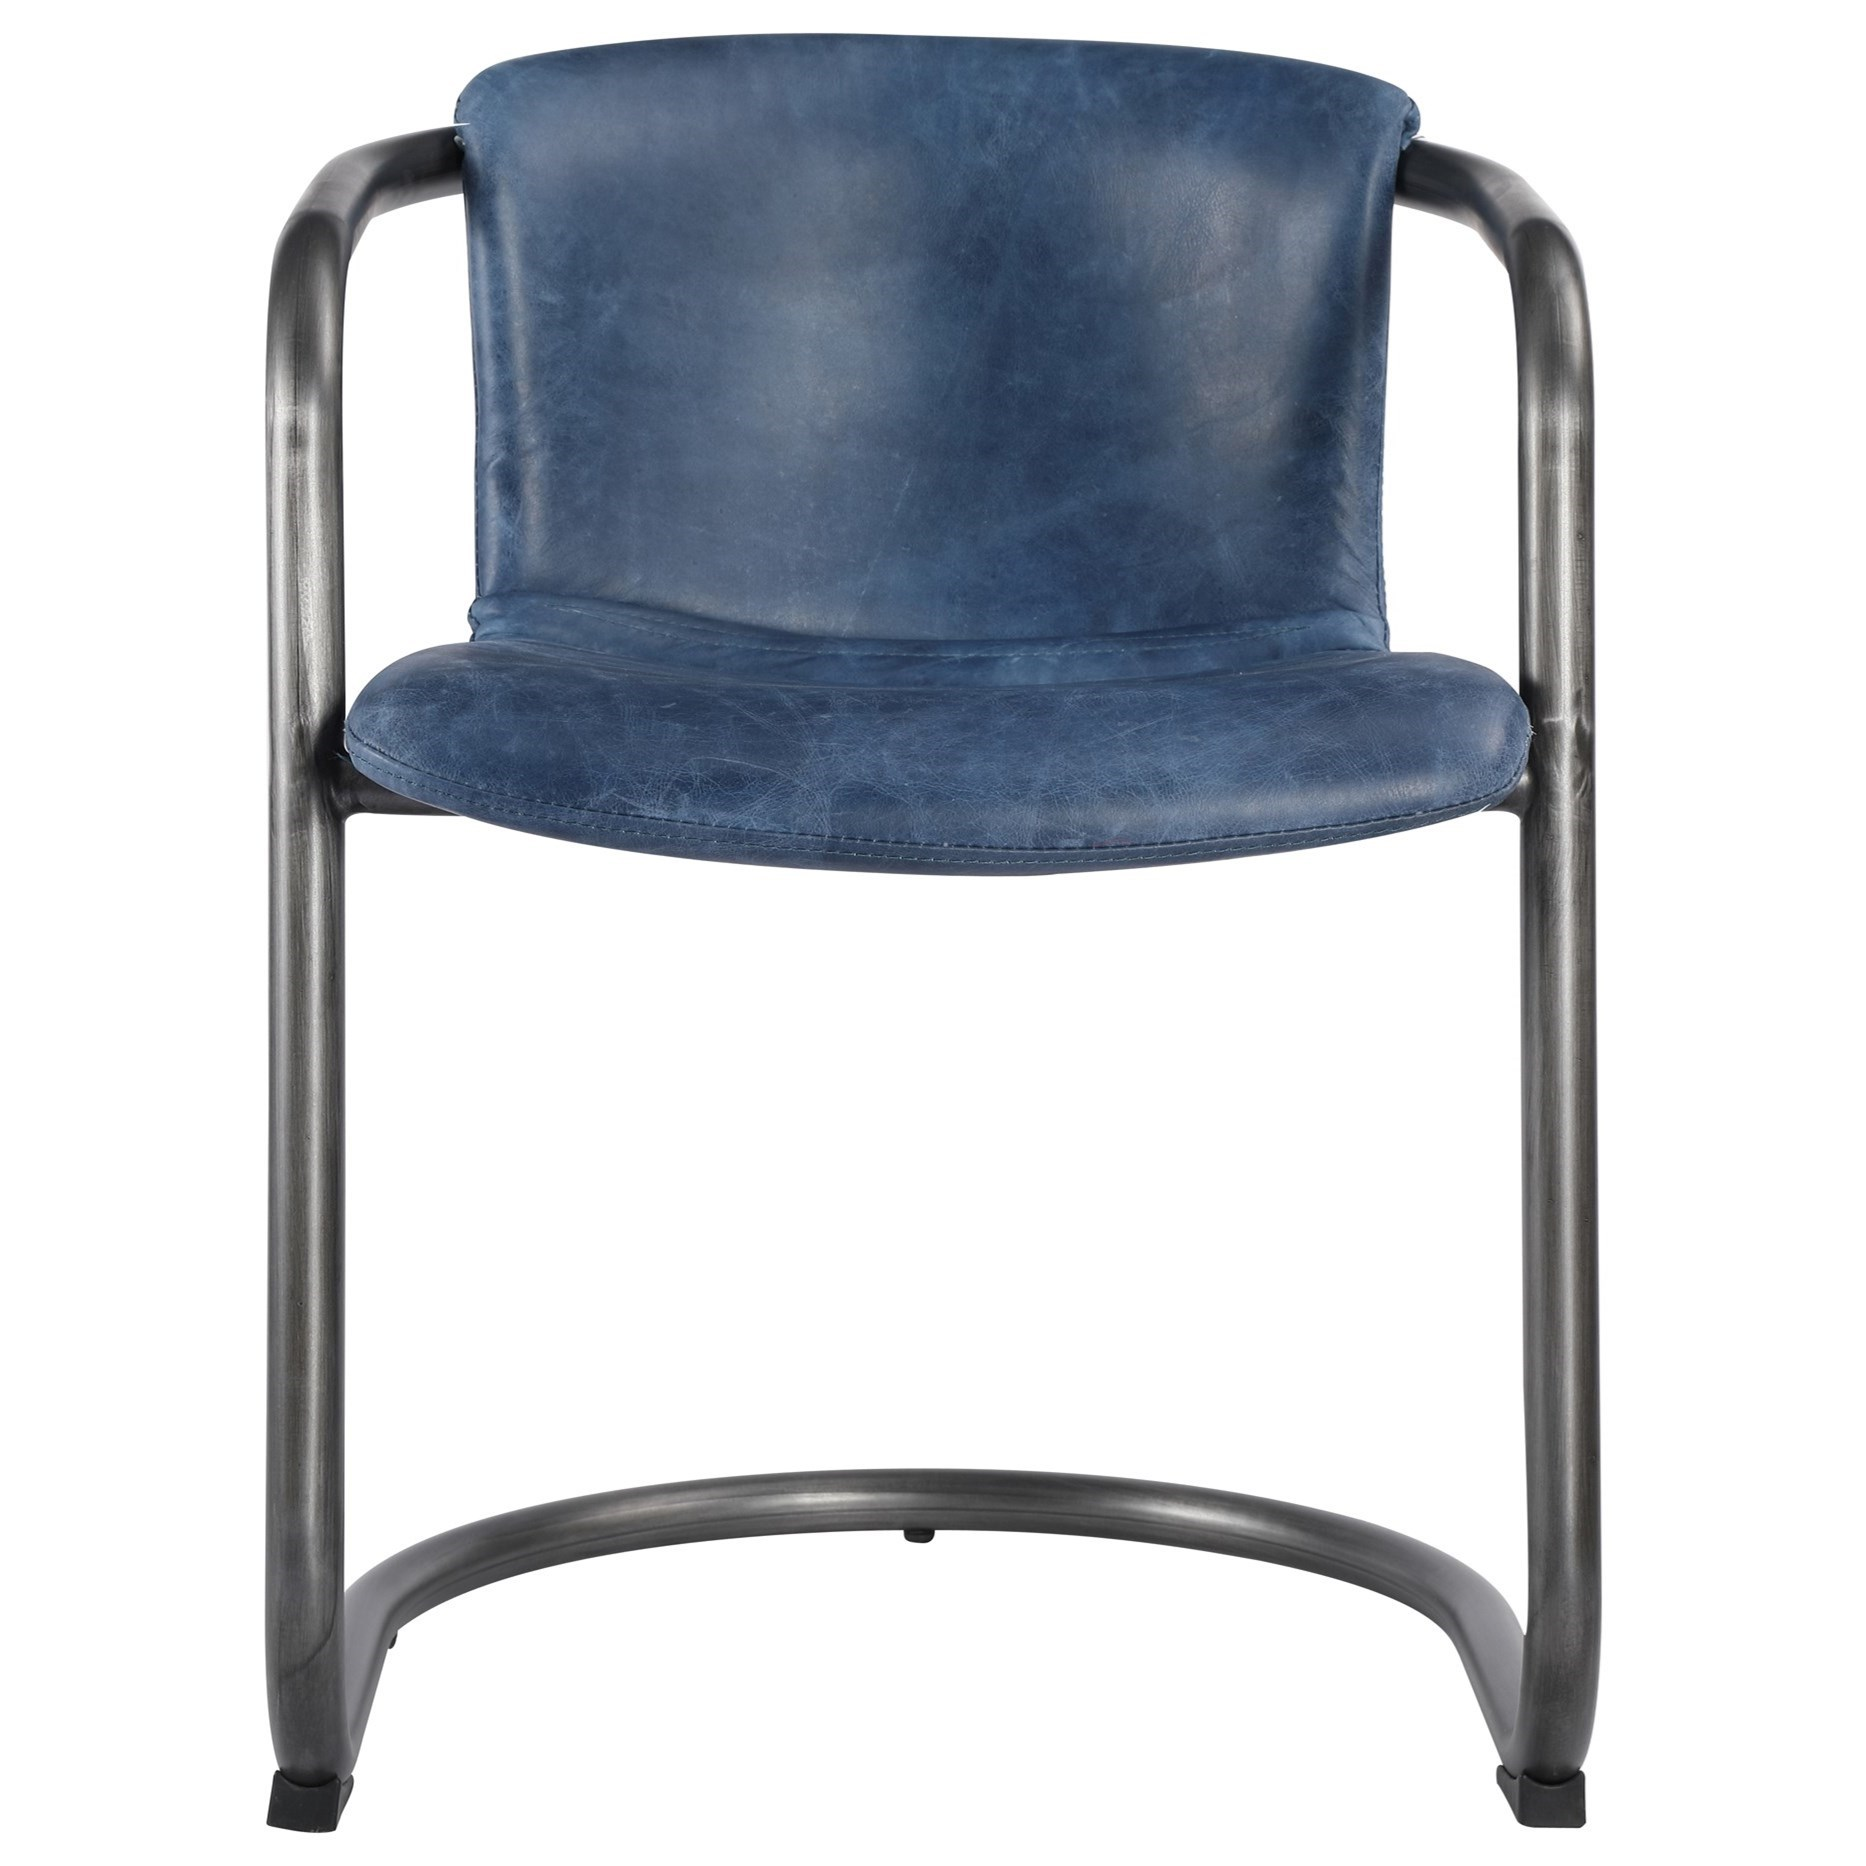 Dining Chairs Freeman Dining Chair by Moe's Home Collection at Stoney Creek Furniture